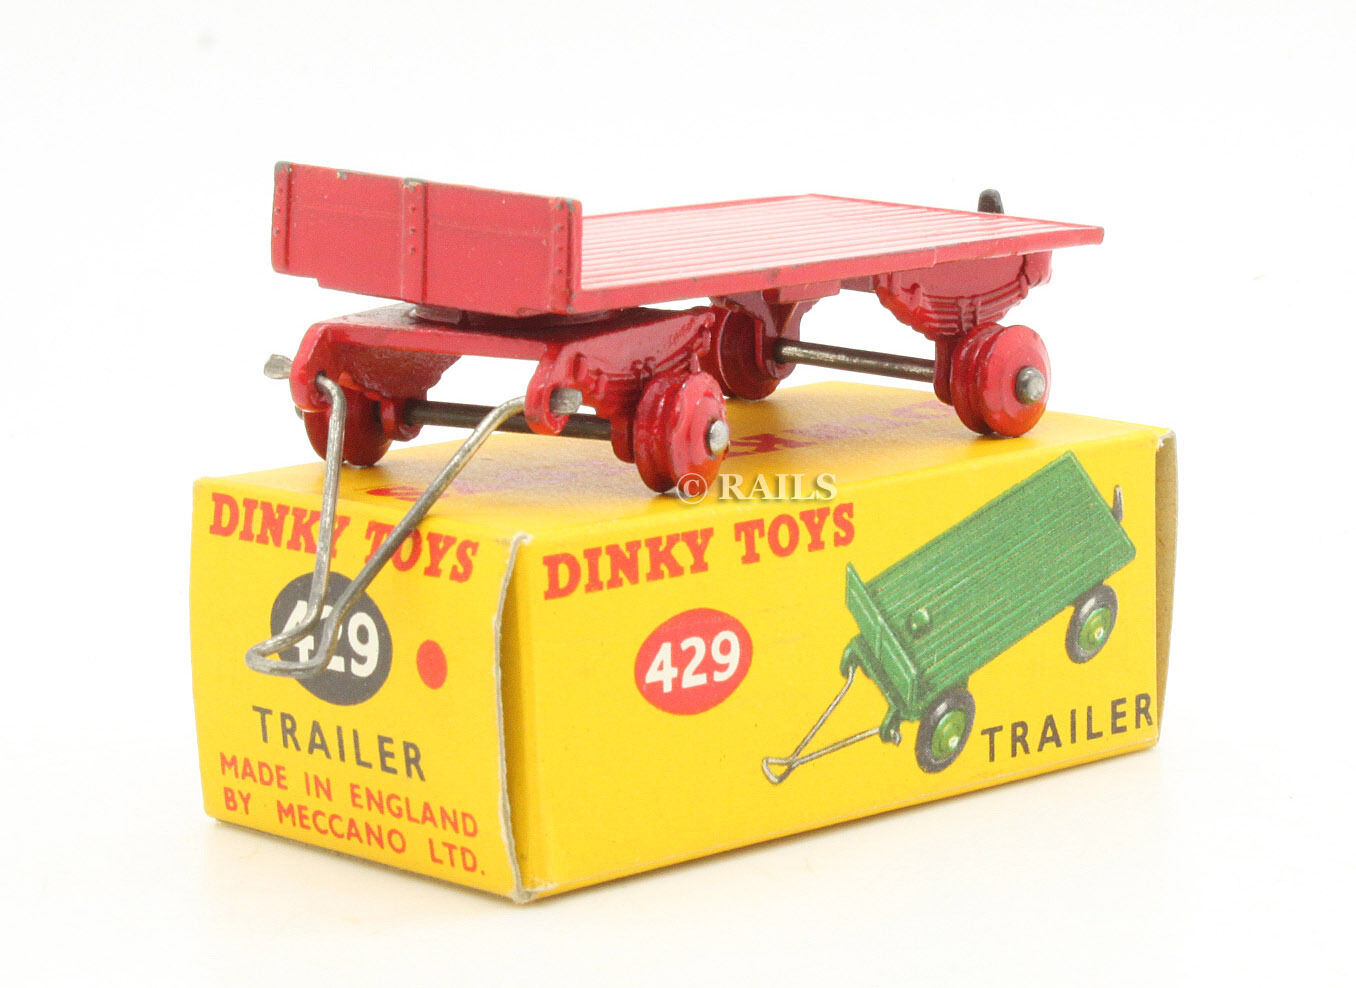 DINKY TOYS 429 RED TRAILER RARE